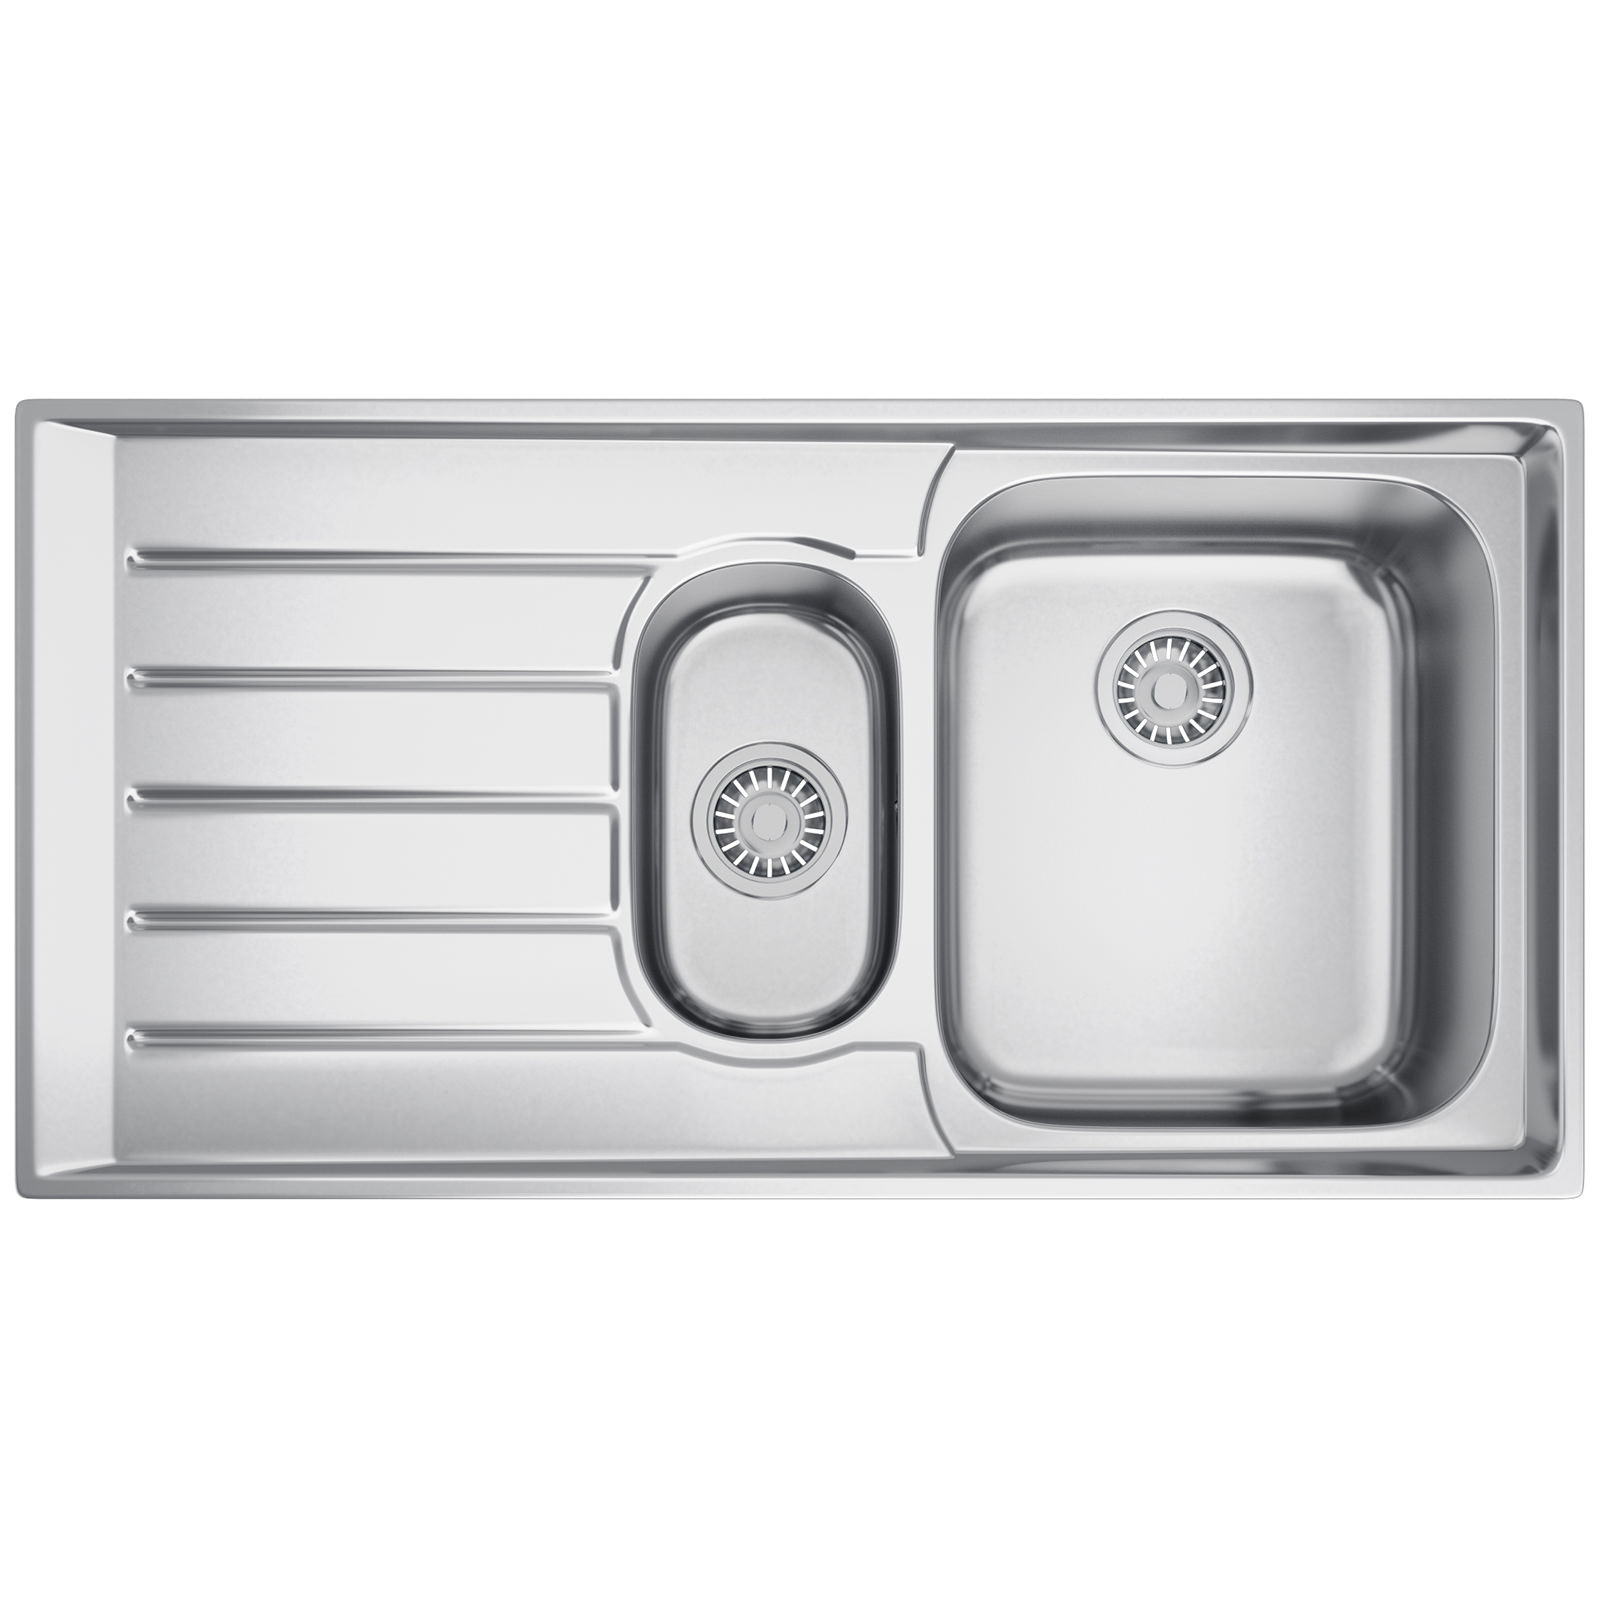 Neptune Sink : Franke Neptune NEX 251 Stainless Steel 1.5 Bowl Kitchen Inset Sink ...